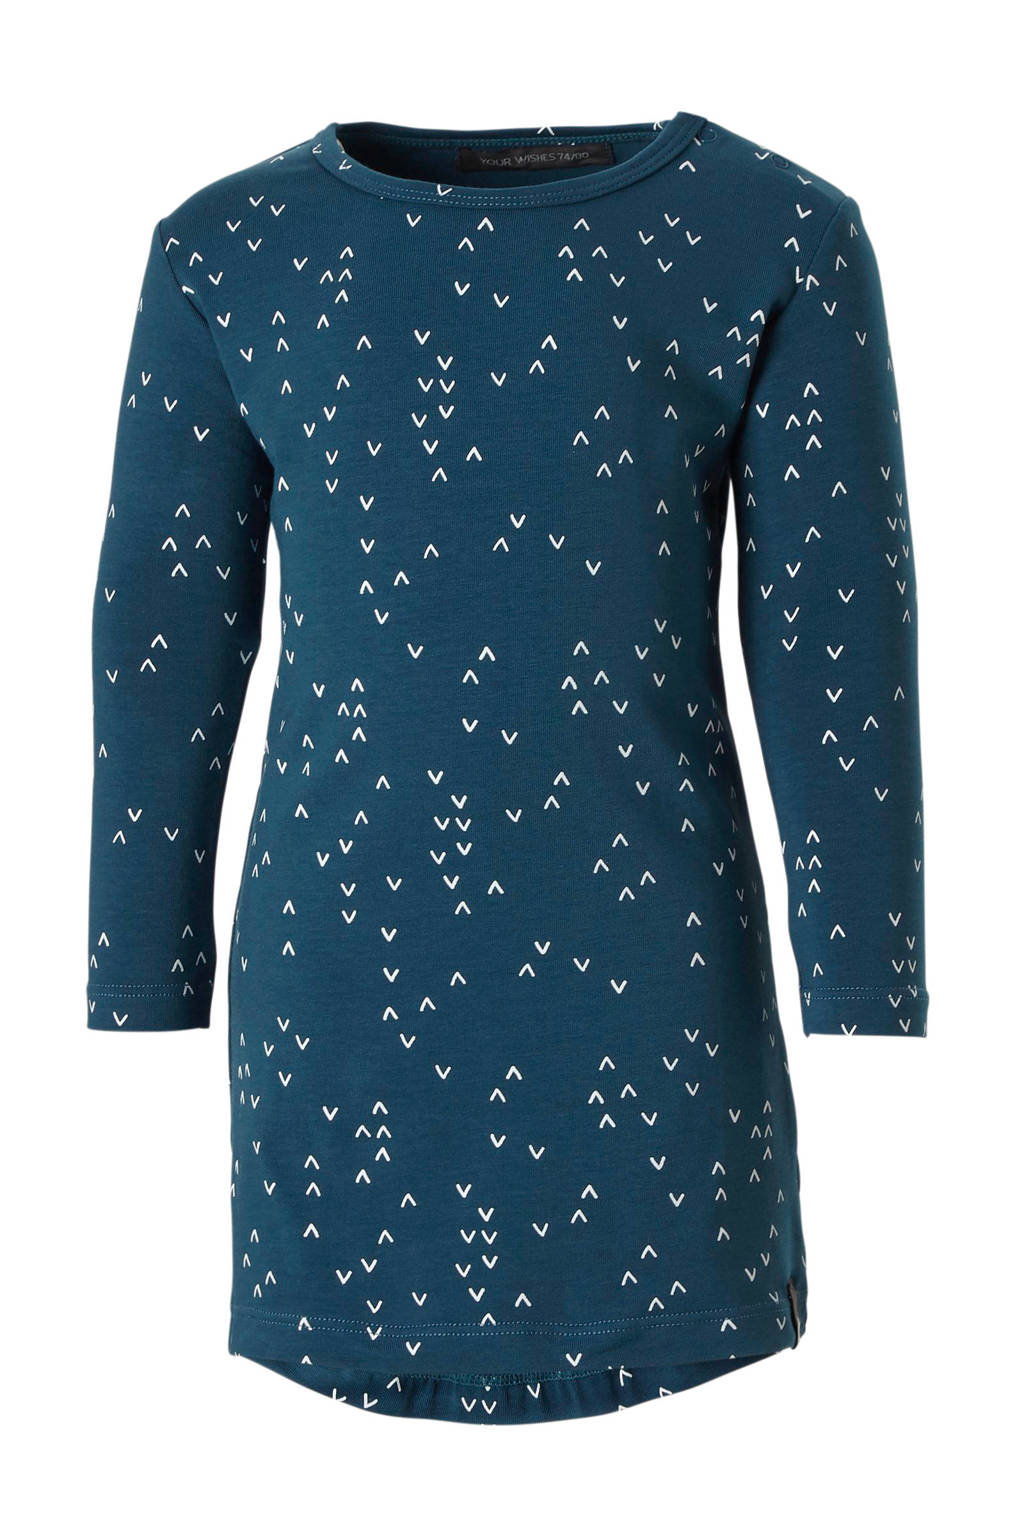 Your Wishes baby jurk met all over print, Blauw/wit